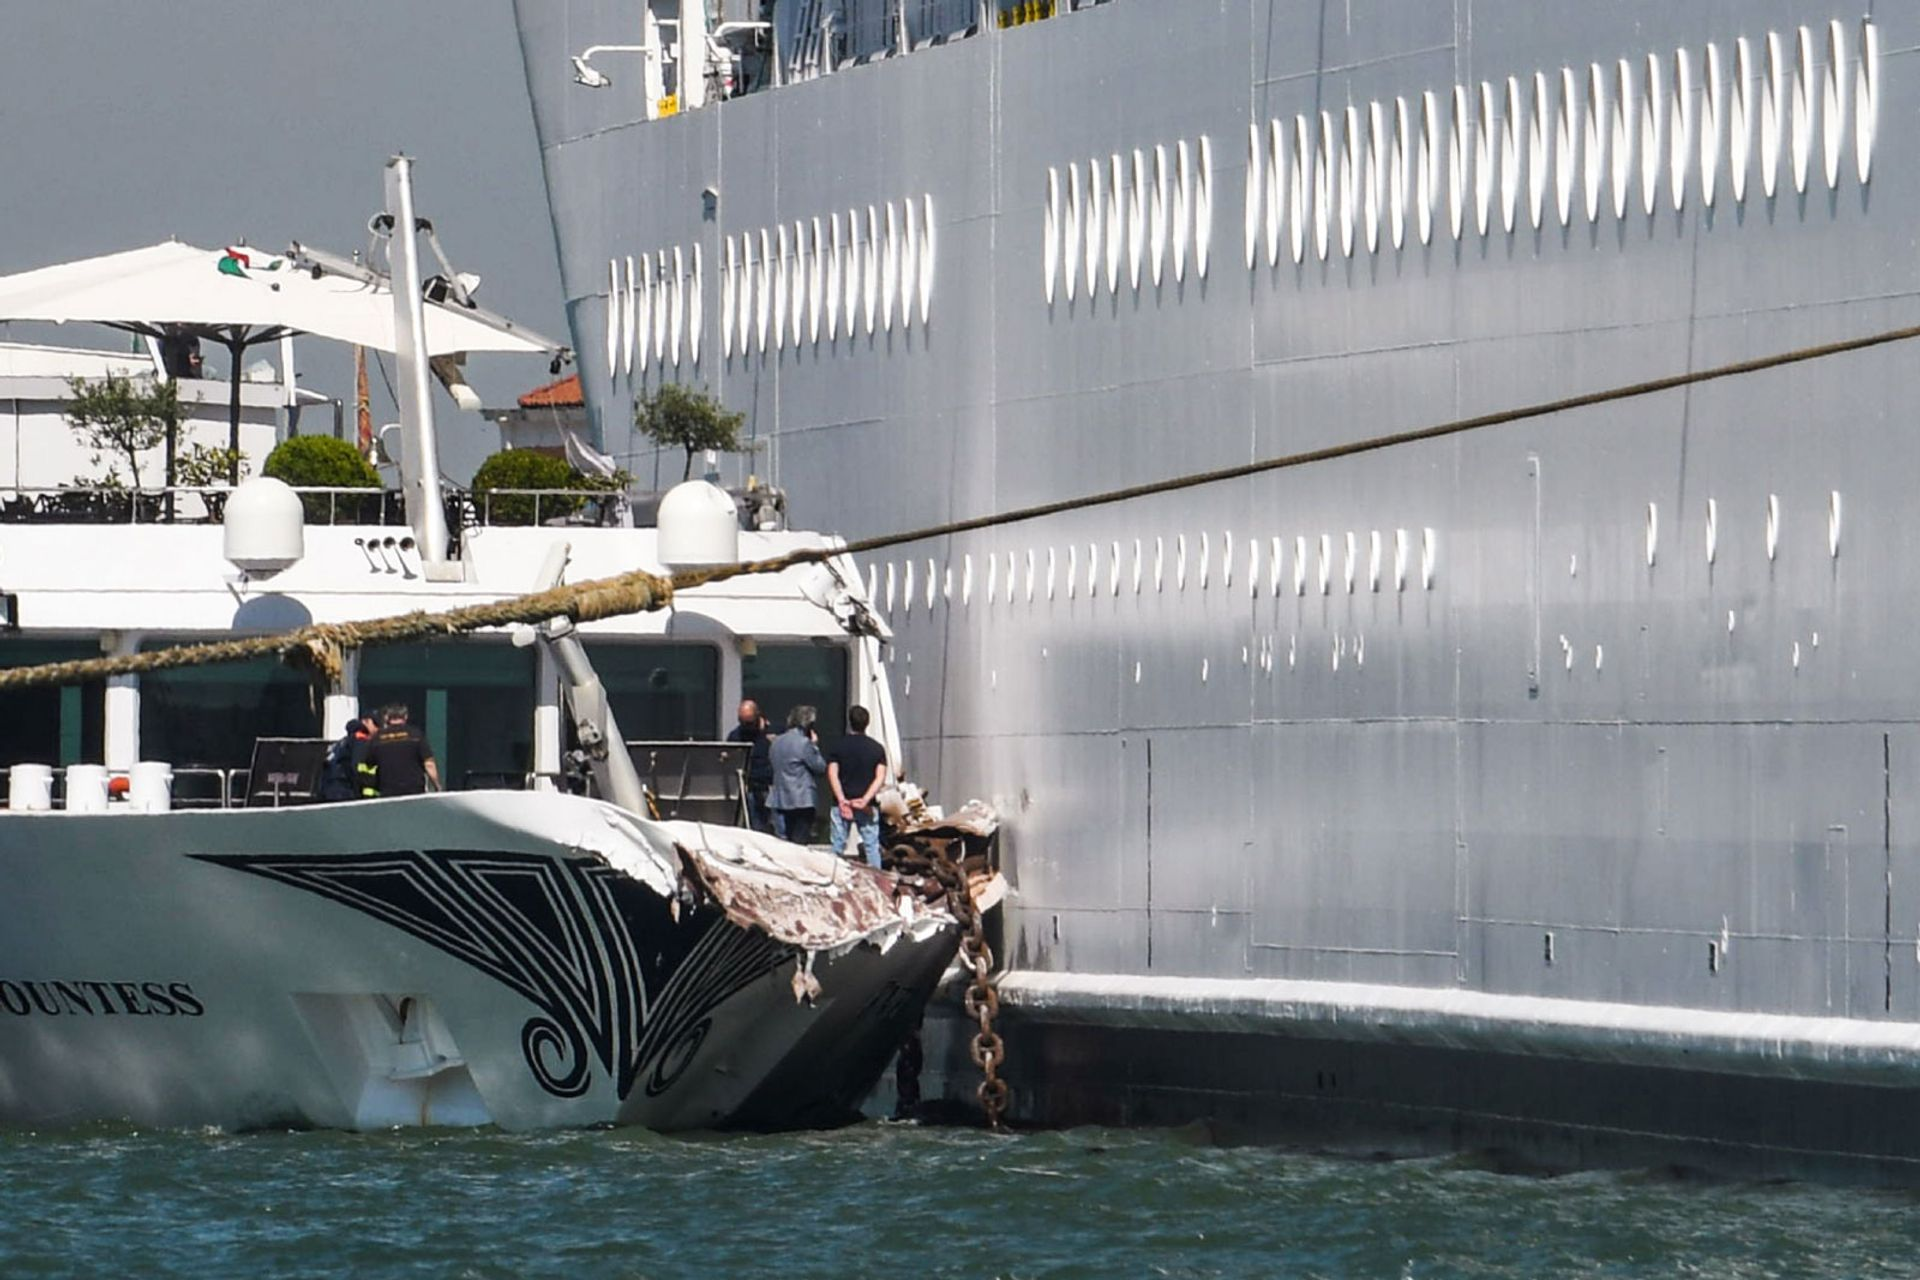 The River Countess tourist boat was hit by the MSC Opera cruise ship in Venice © Andrea Pattaro/AFP/Getty Images